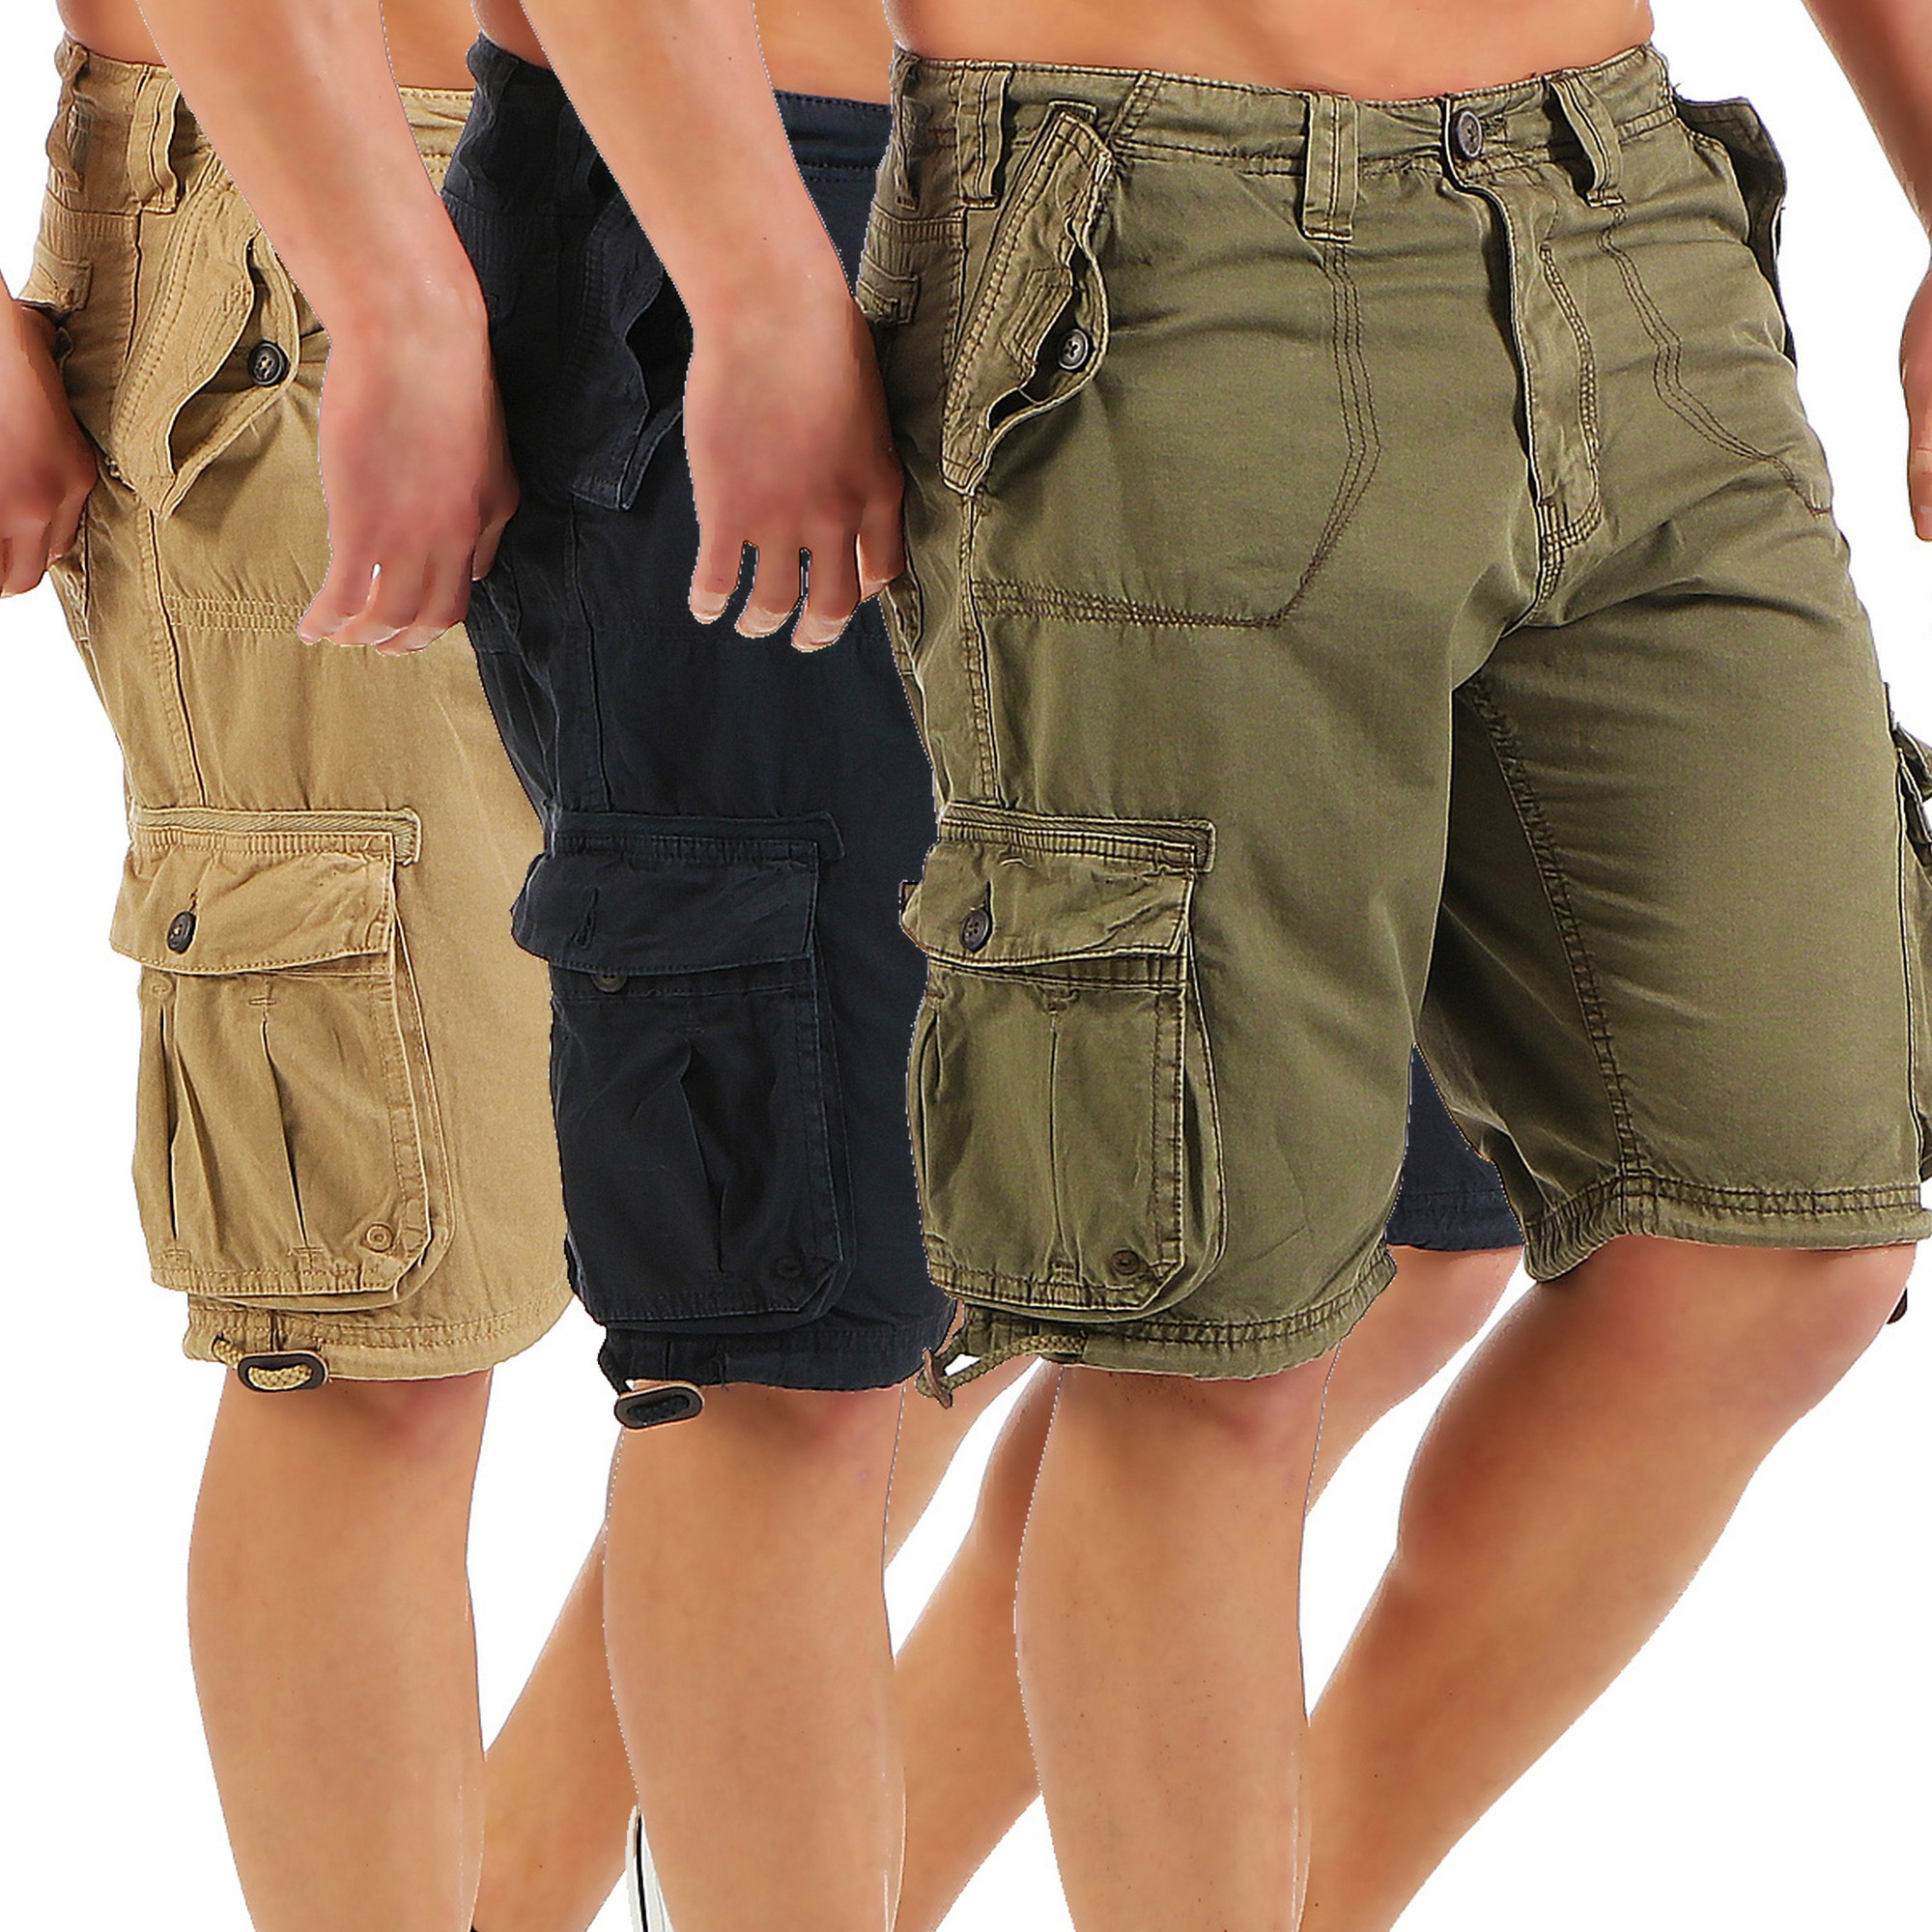 ausnahme zustand herren cargo shorts kurze hose bermuda s. Black Bedroom Furniture Sets. Home Design Ideas